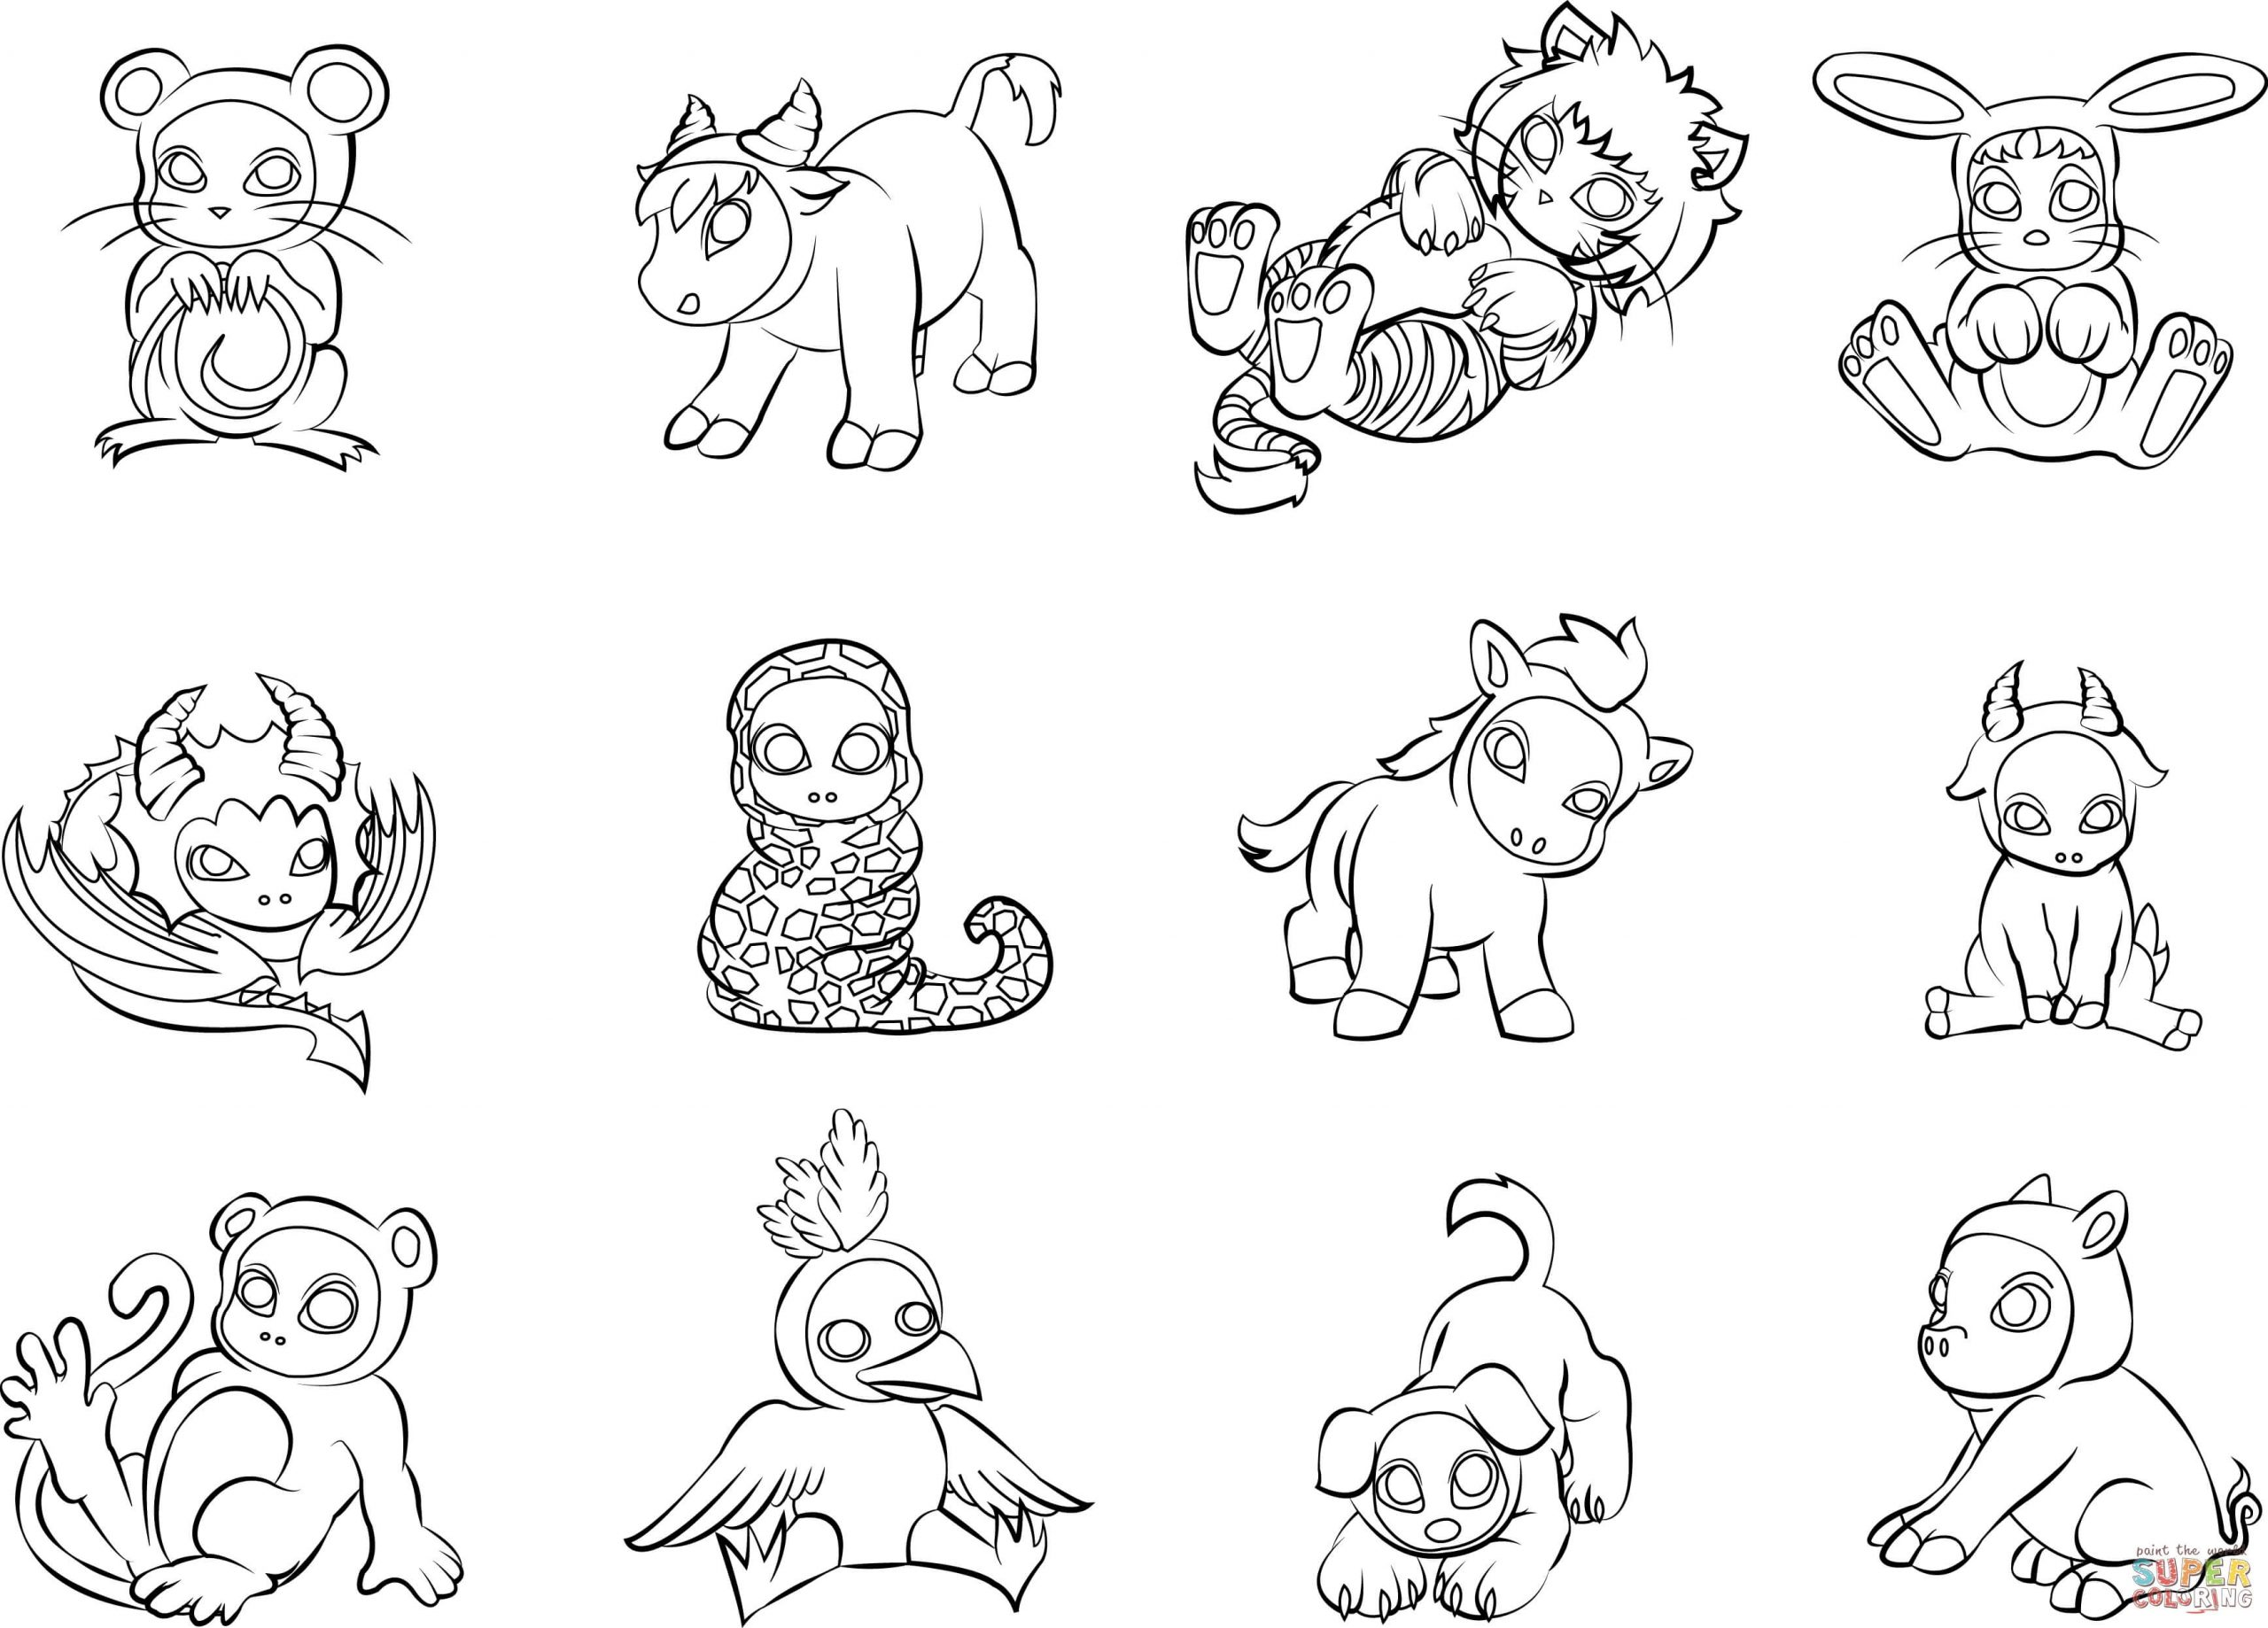 12 Chinese Zodiac Animals Coloring Page | Free Printable